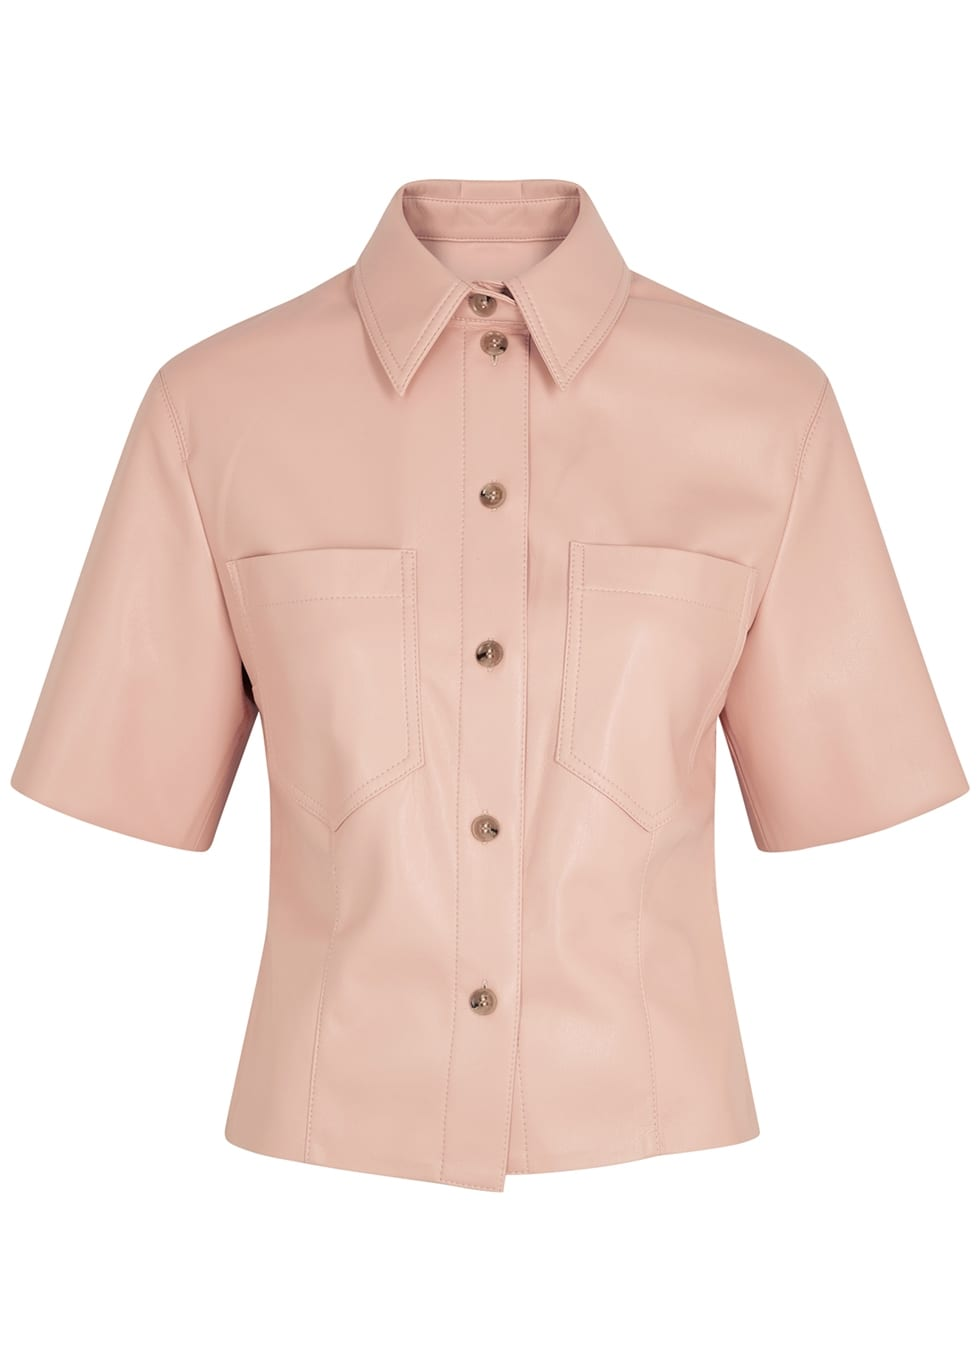 pink leather shirt